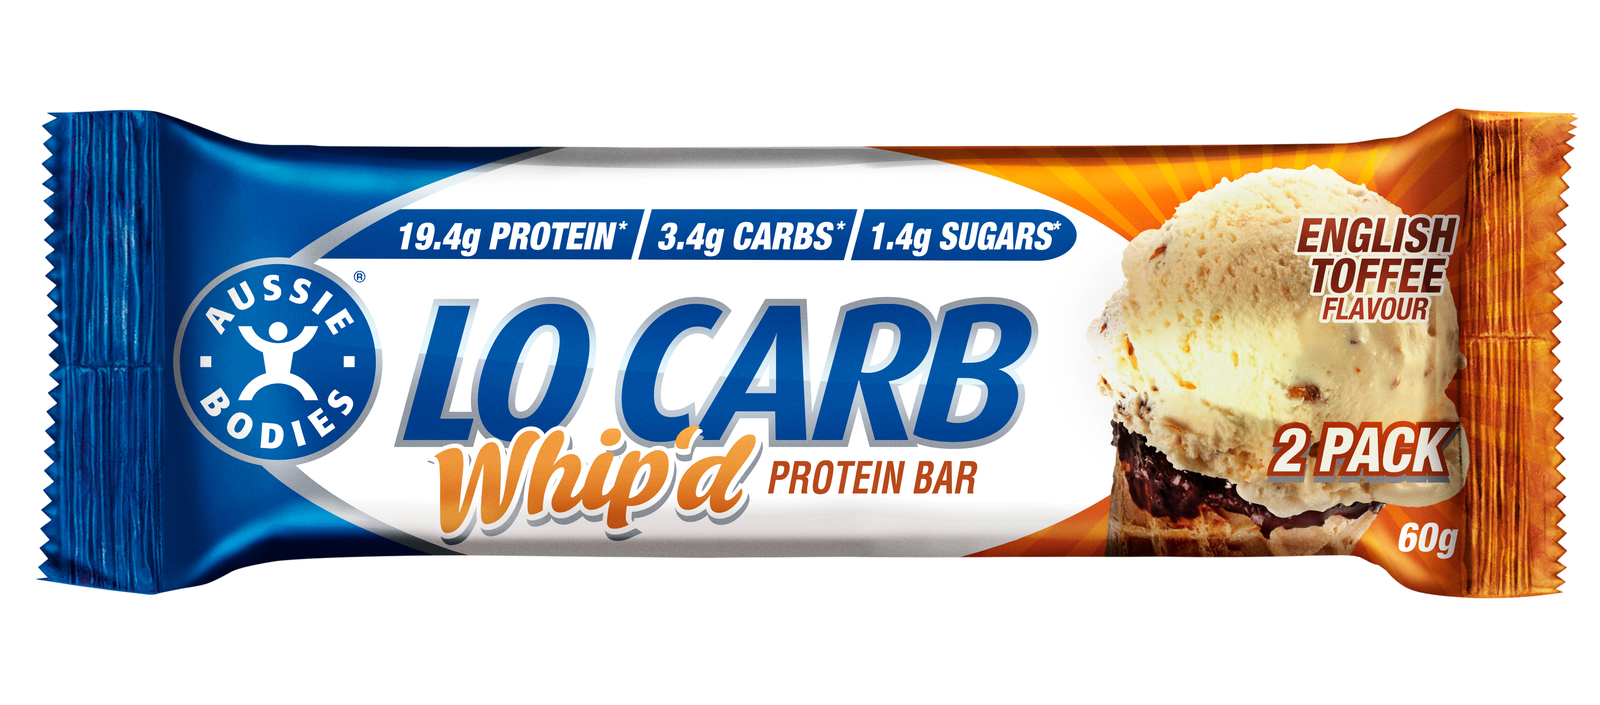 Aussie Bodies Lo Carb Whip'd Protein Bars - English Toffee (12x60g) image